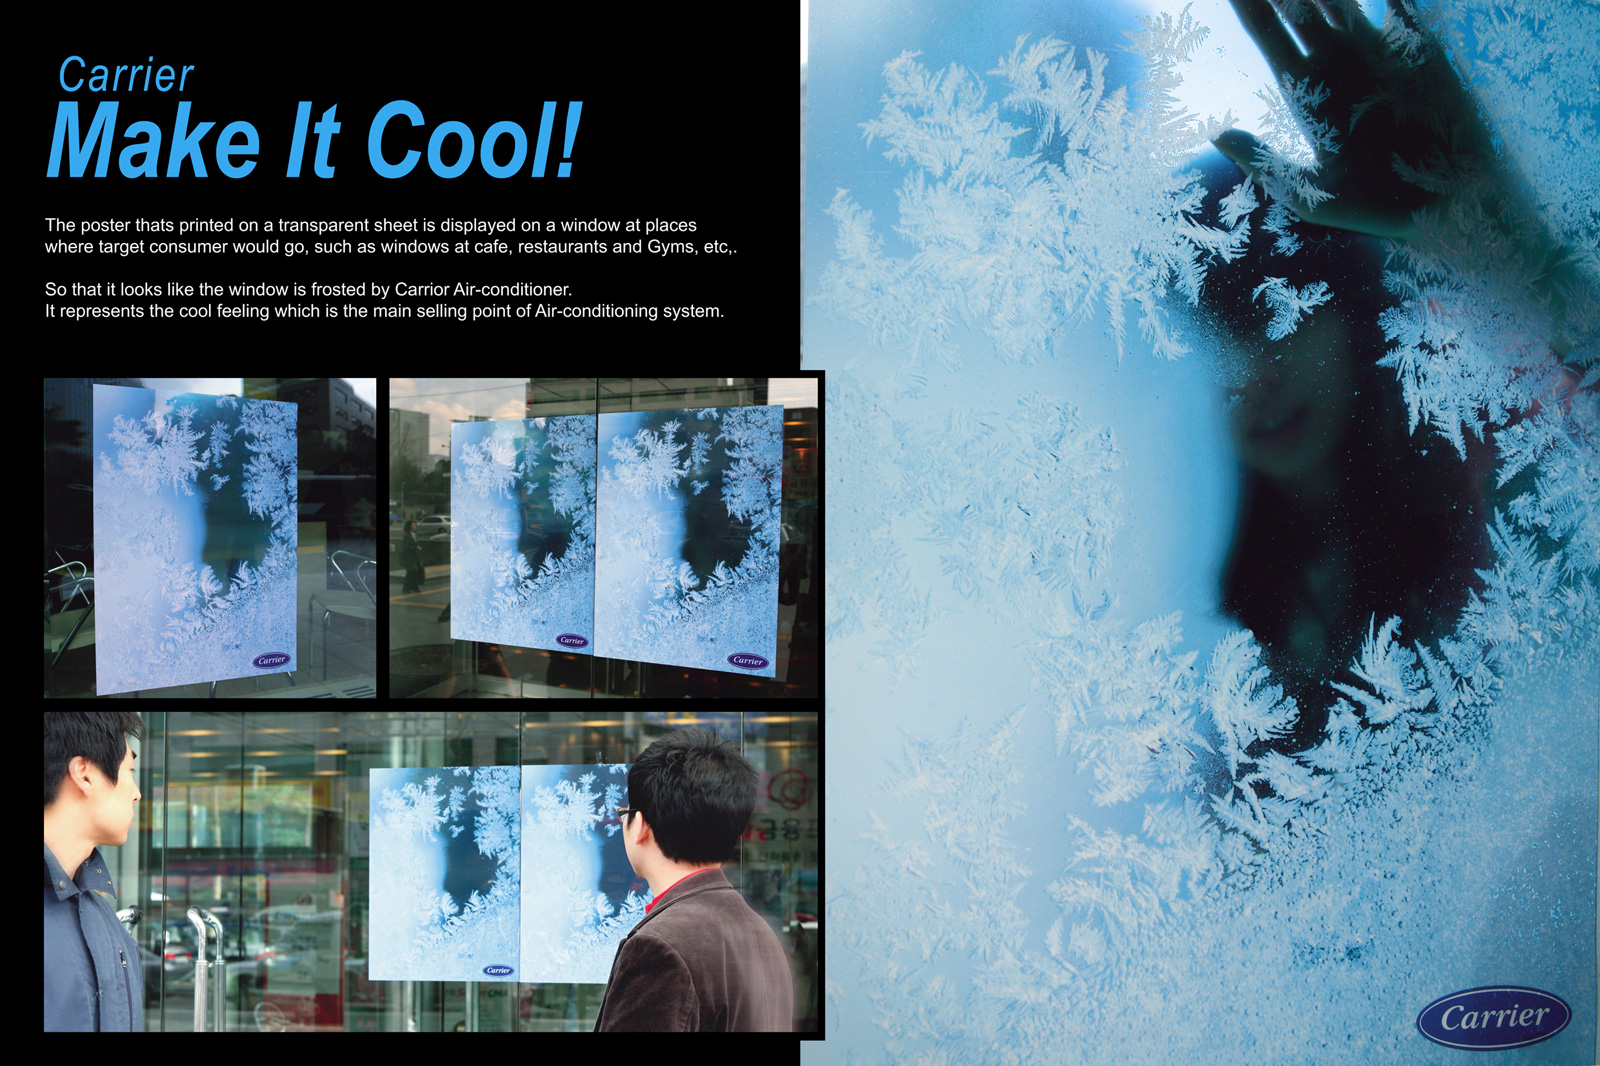 carrier outdoor advert by hancomm make it cool transparent poster